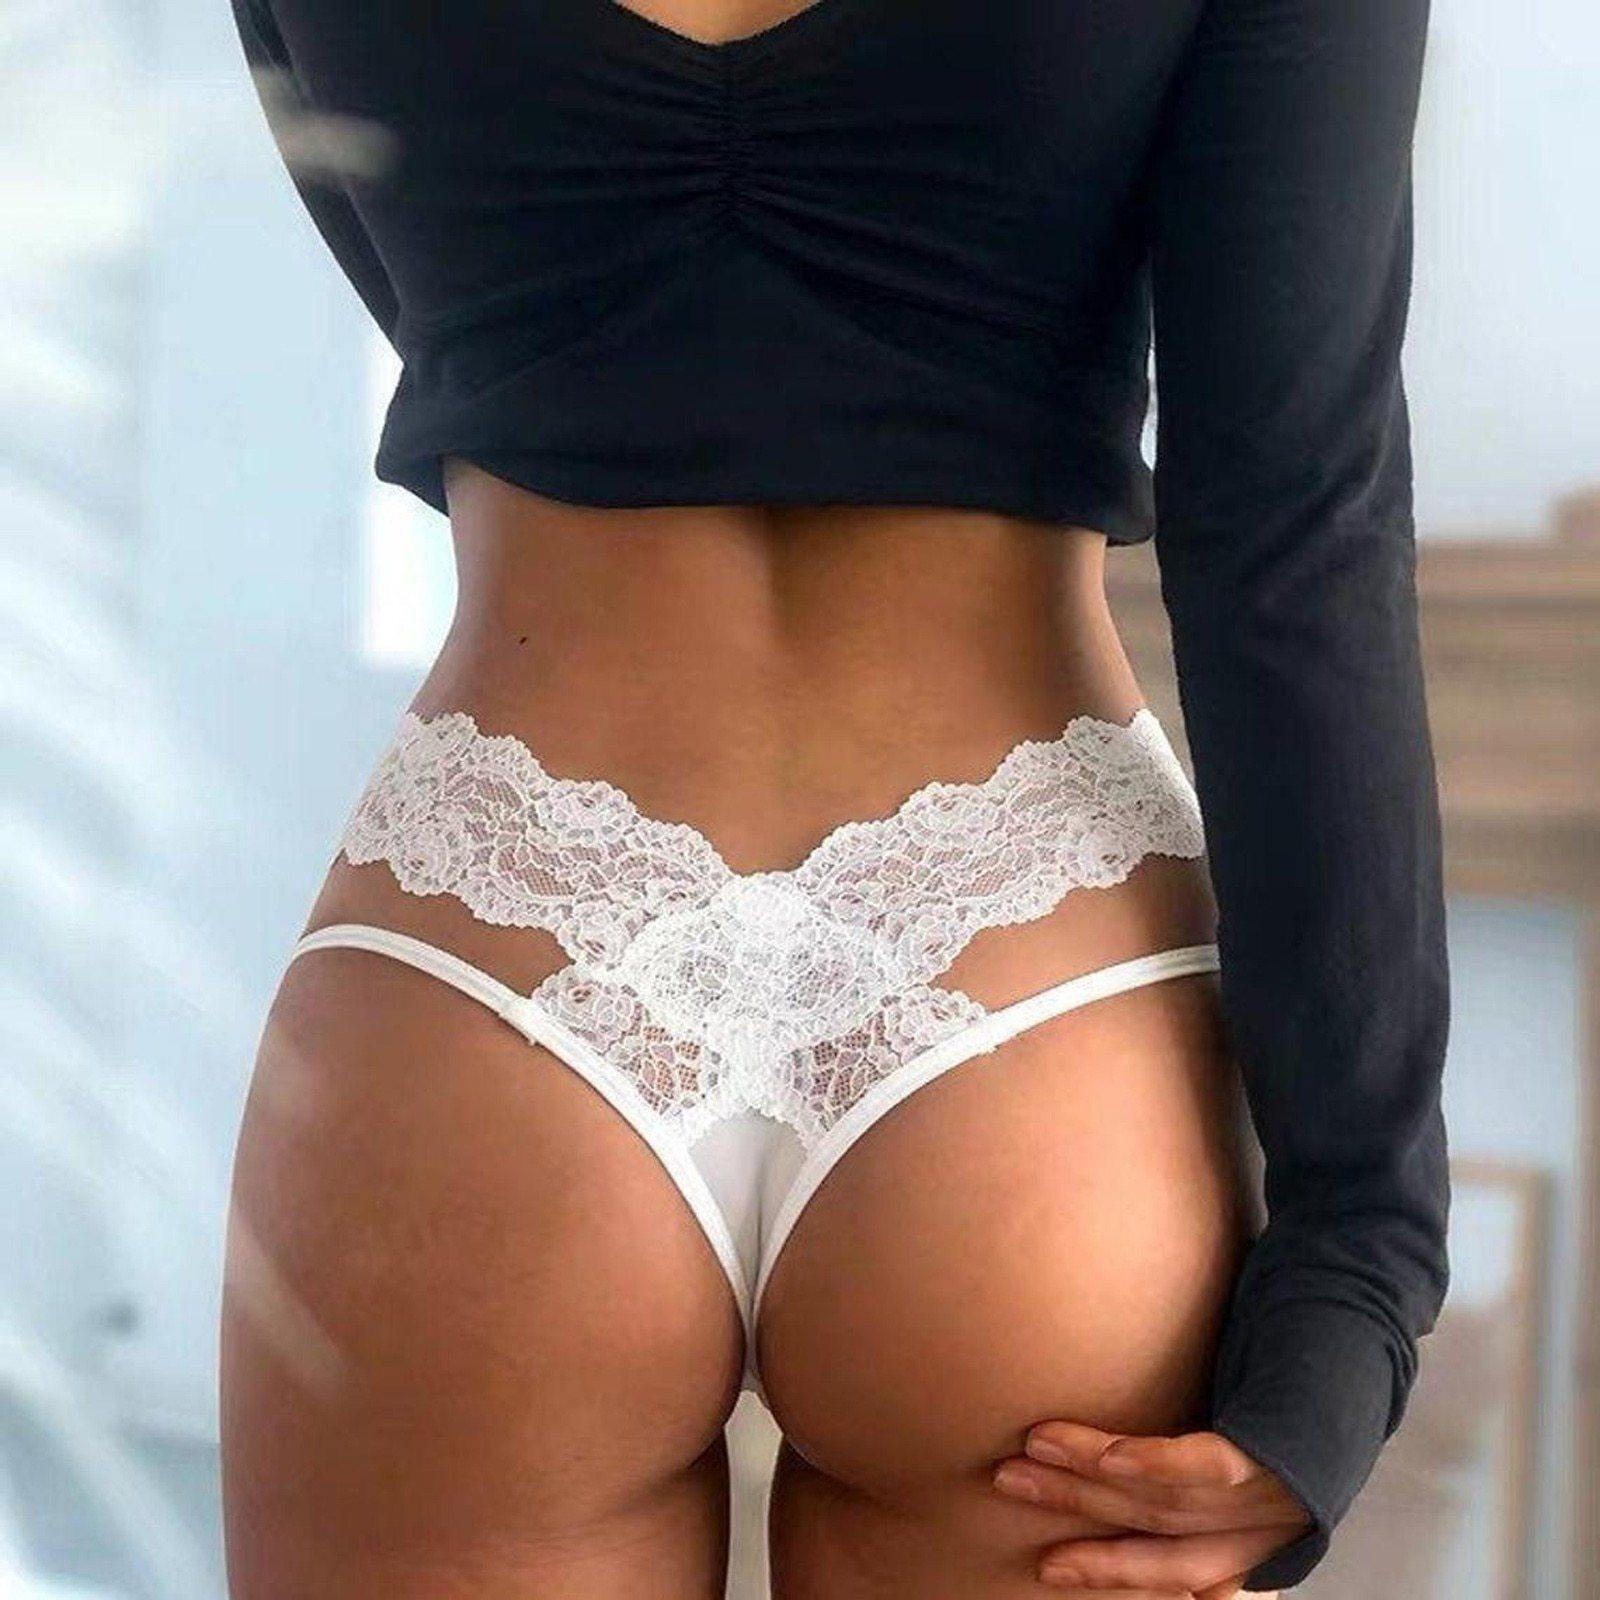 Women Sexy Lace Lingerie Temptation Low-waist Panties Embroidery Thong Transparent Hollow out Underwear Female G String - Shirt King Shop